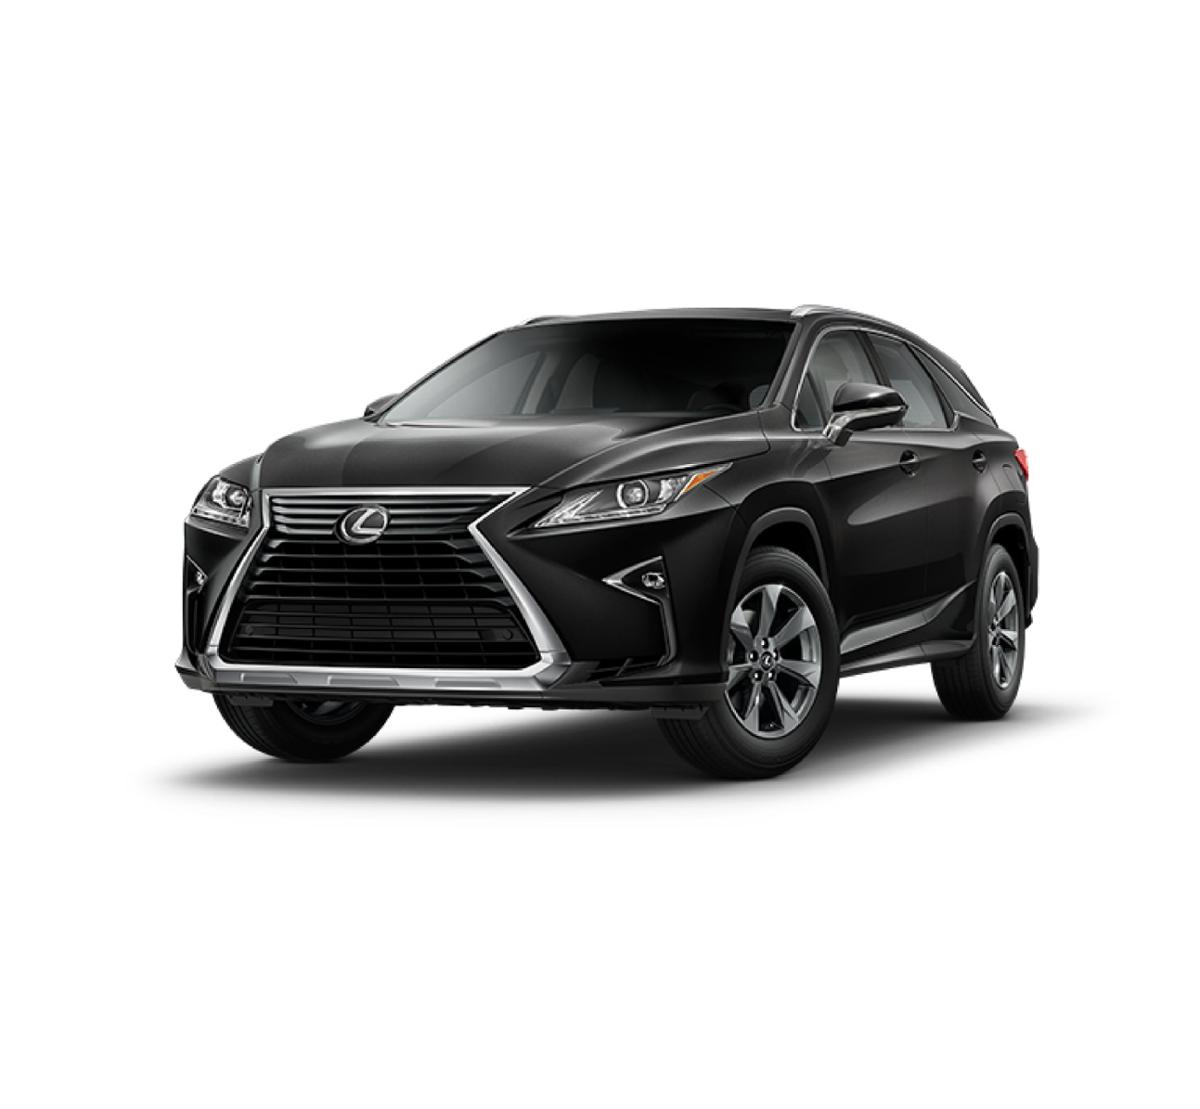 2019 Lexus RX 350L Vehicle Photo in Dallas, TX 75209